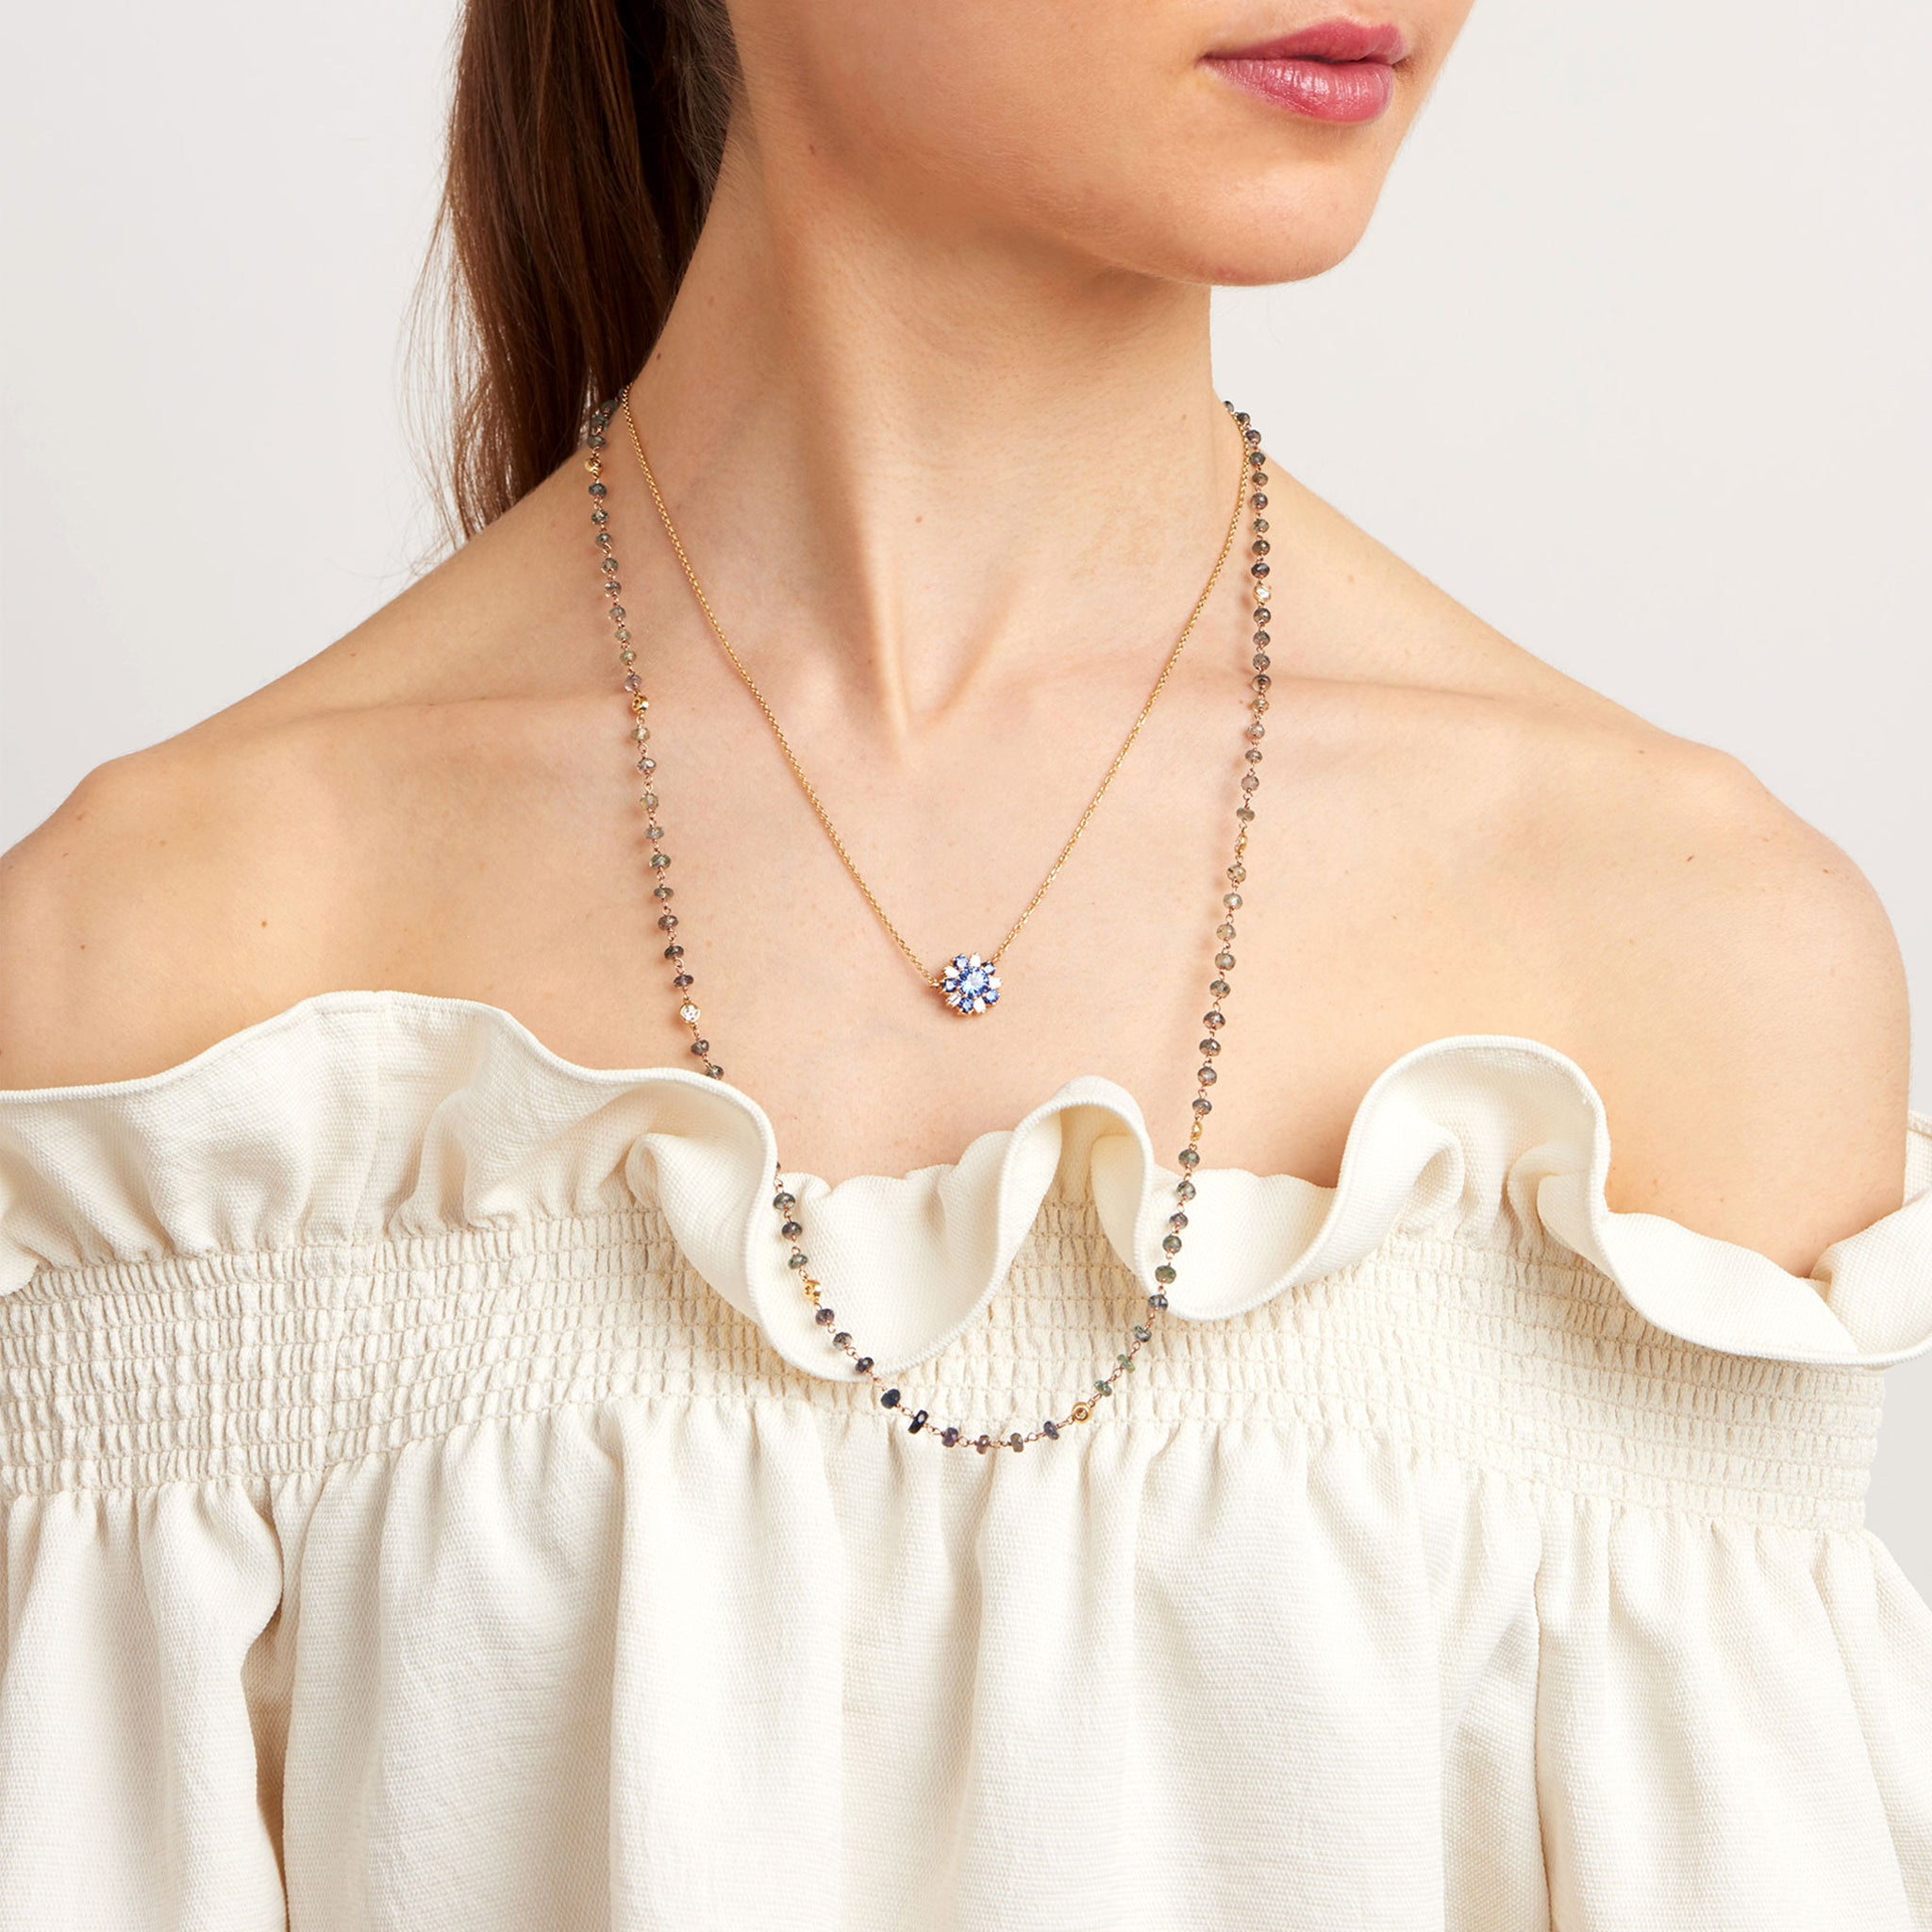 Mimi-So-Wonderland-Ballerina-Sapphire-Necklace